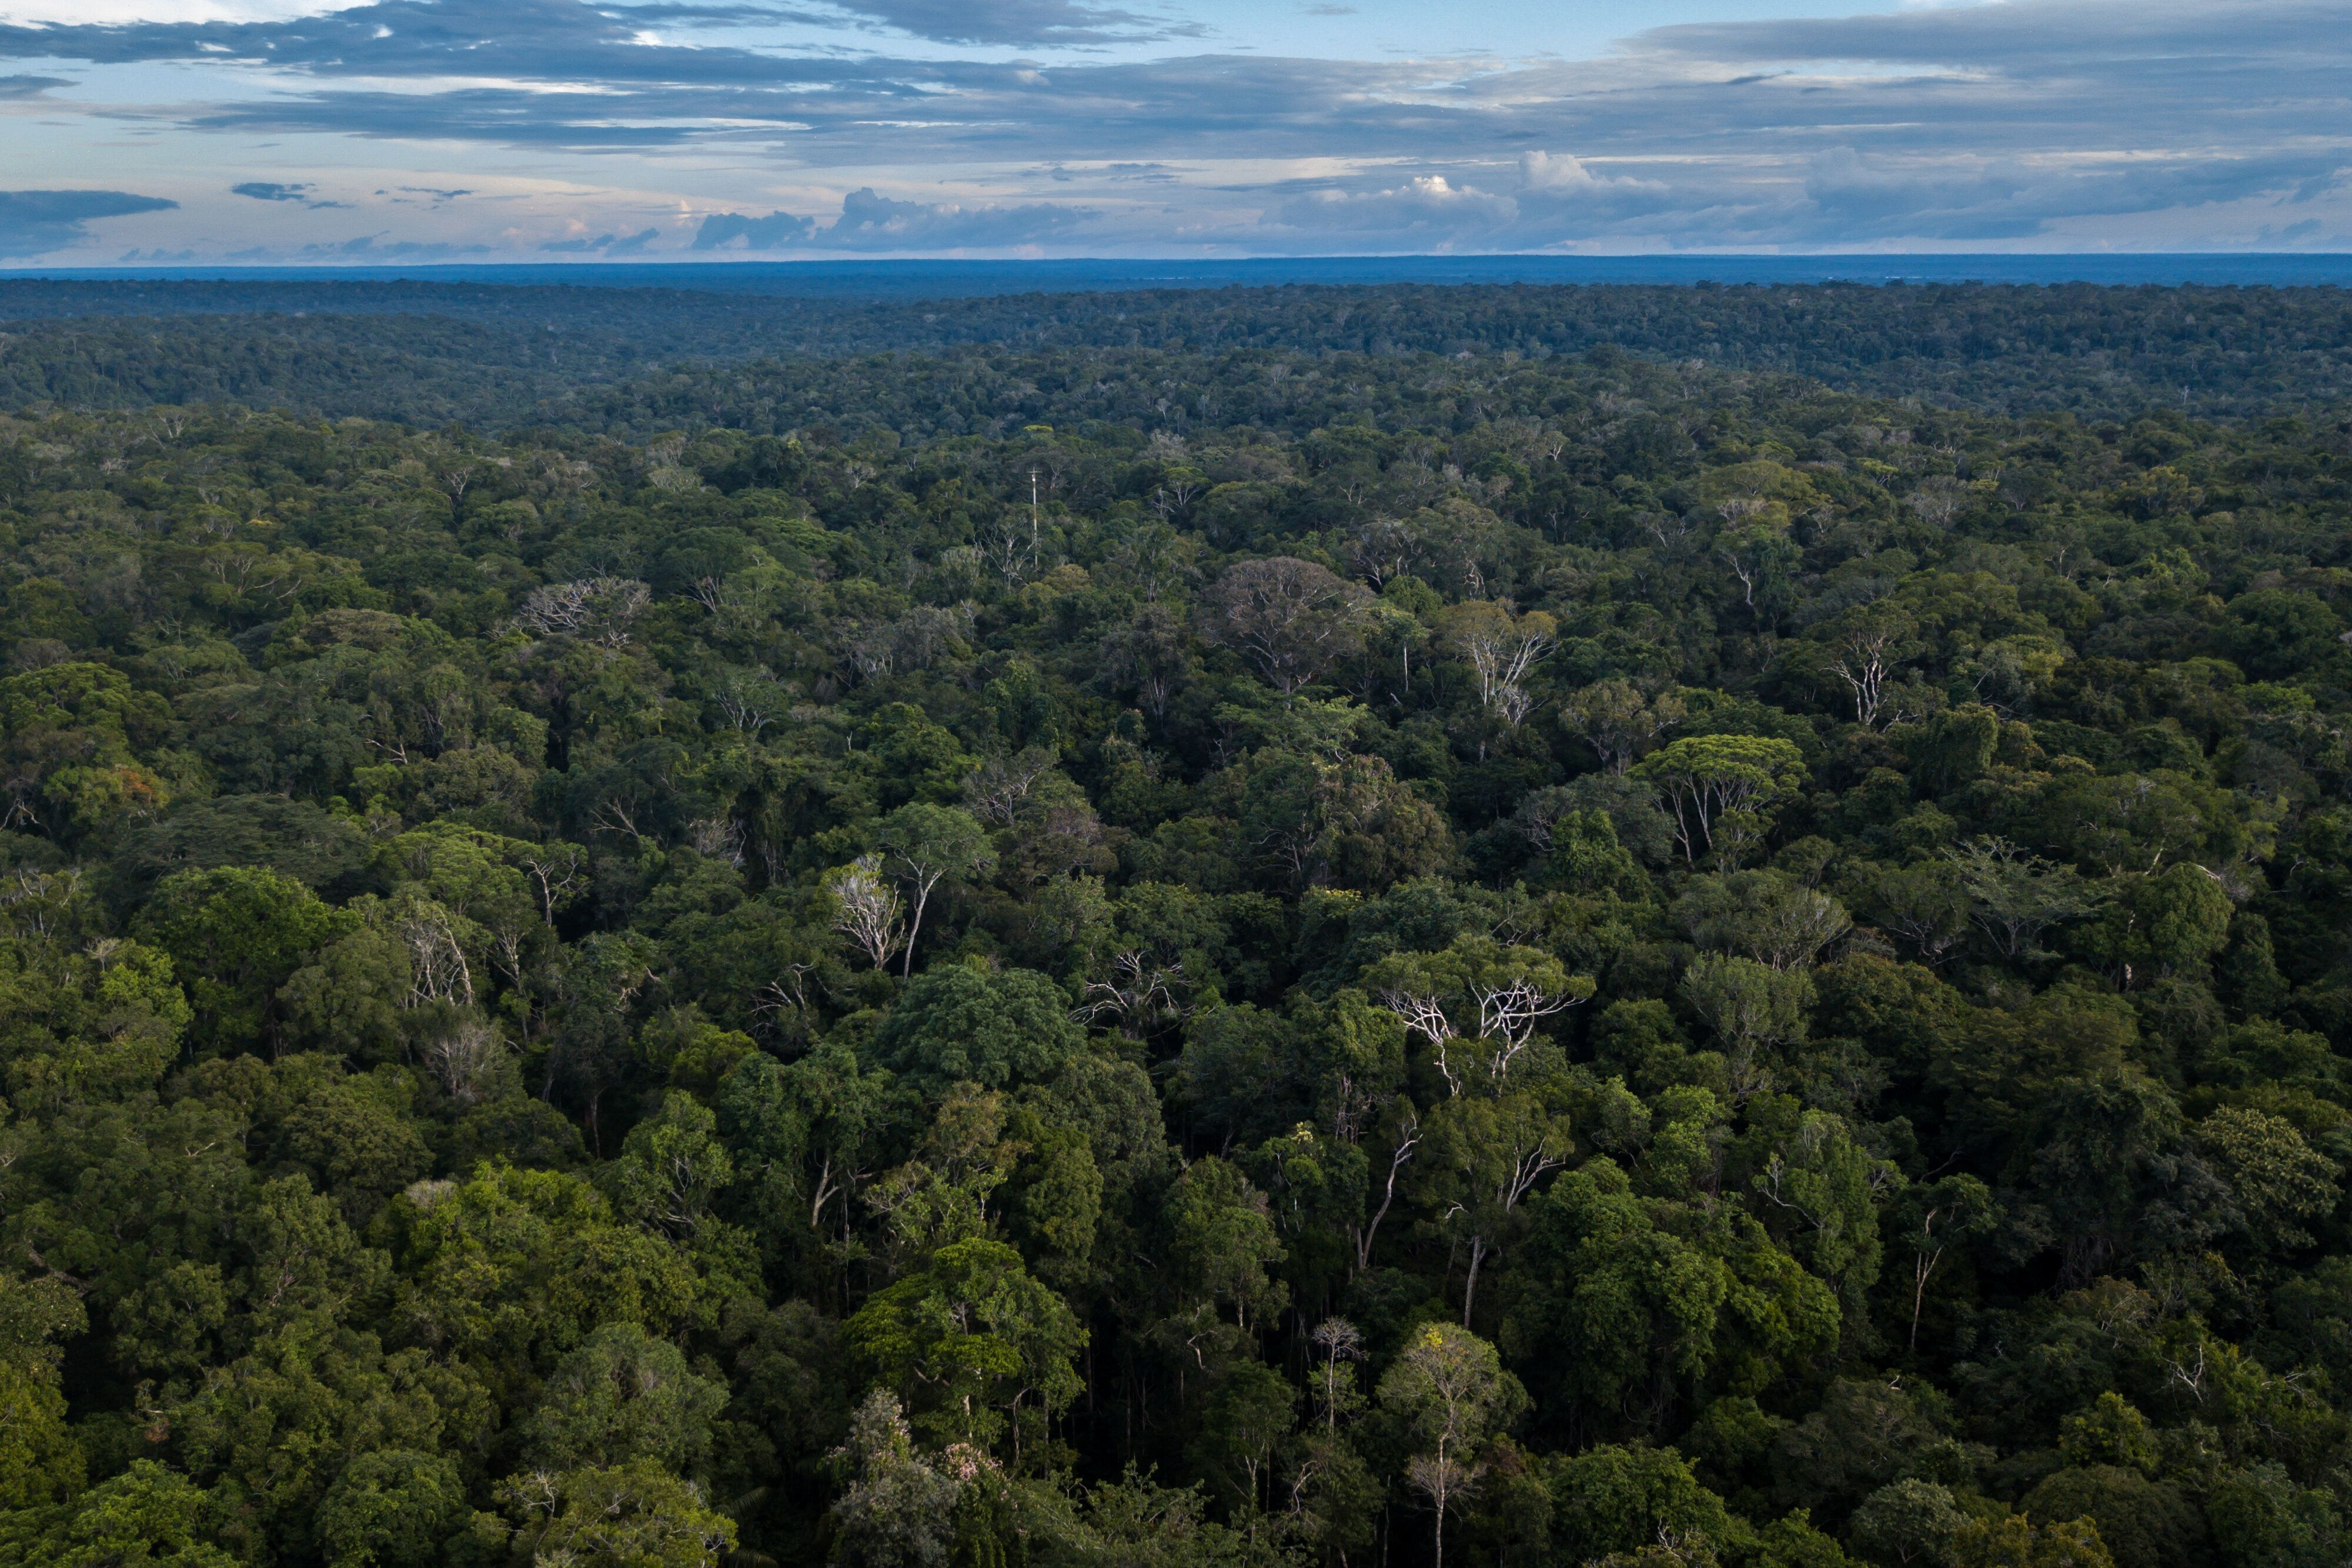 2018 Was Among Most Destructive Years For Tropical Tree Cover Since 2001